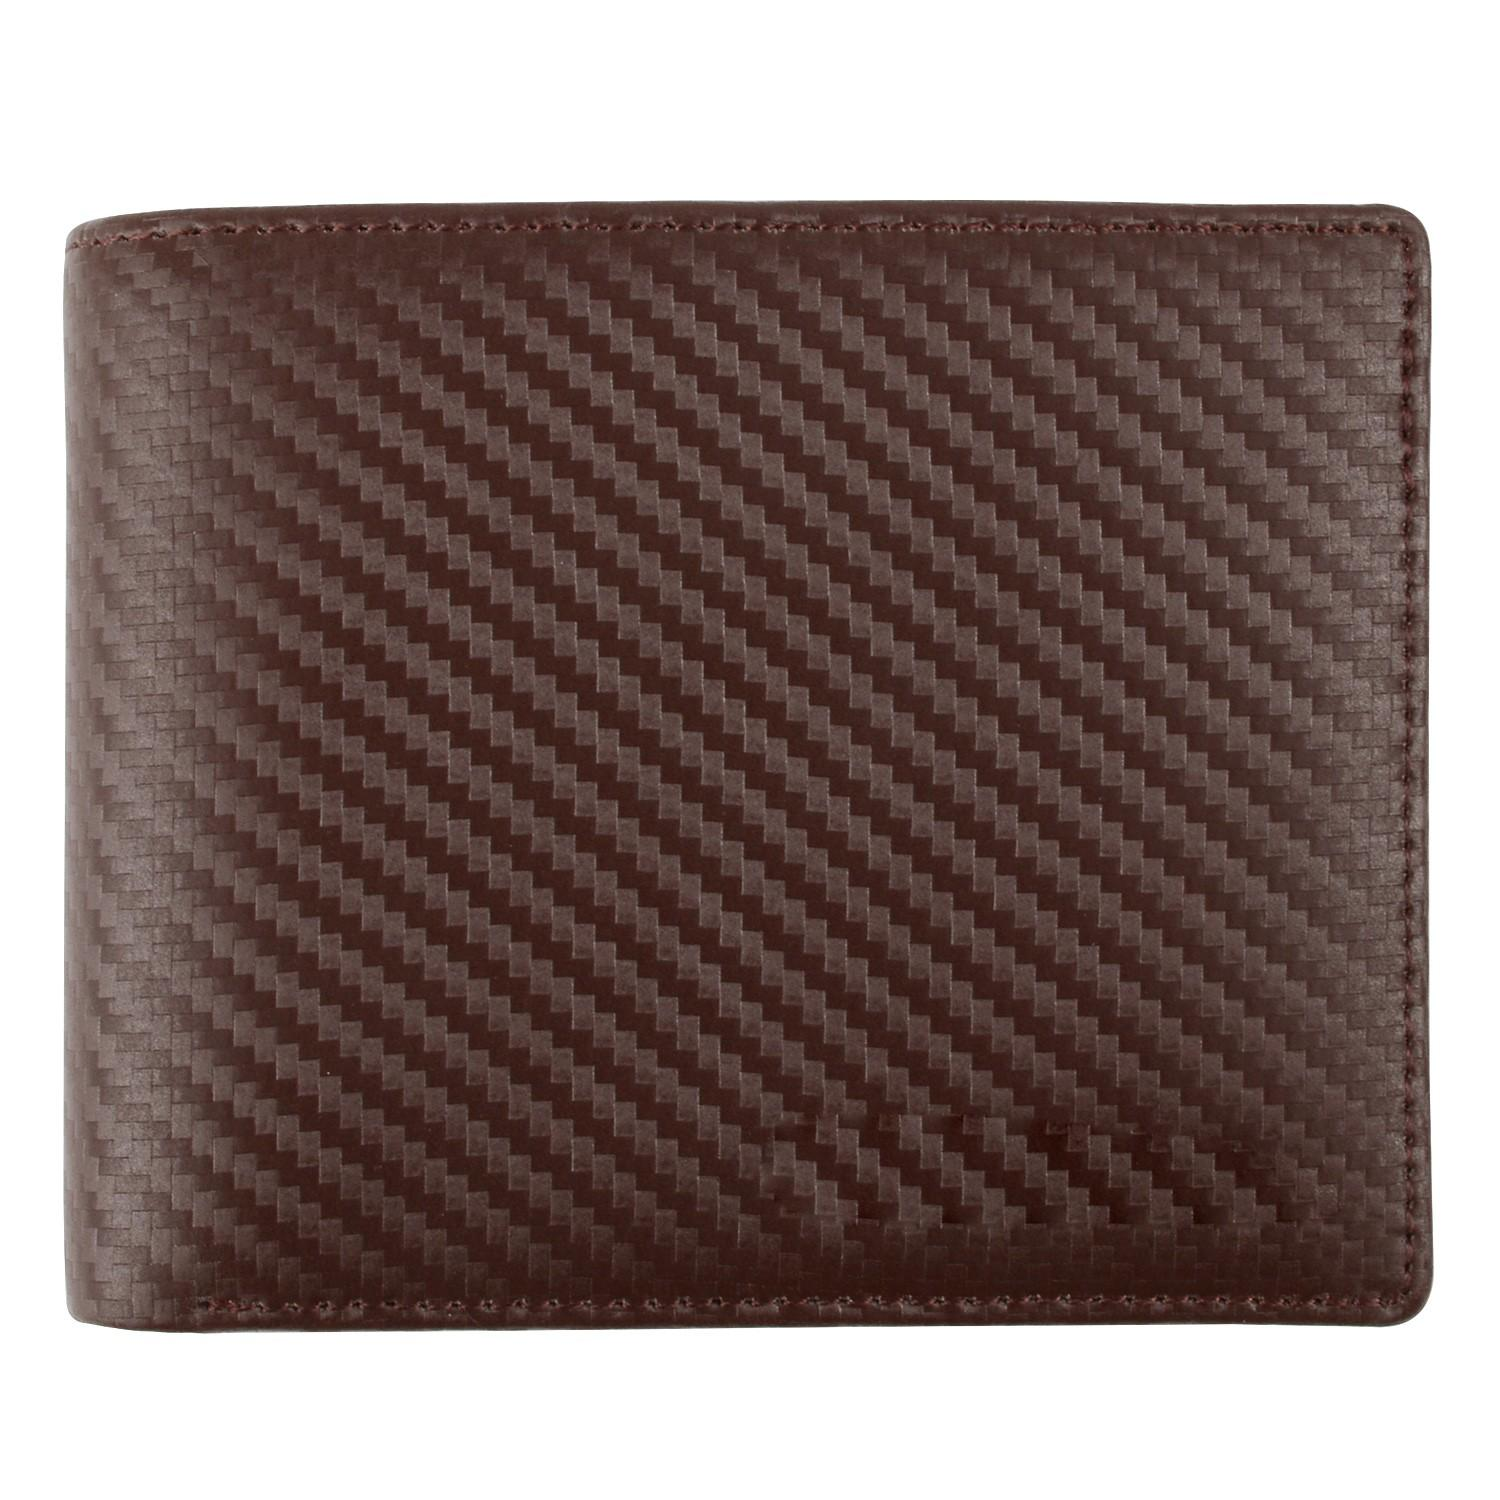 AIVI multi-function custom leather wallets for sale for men